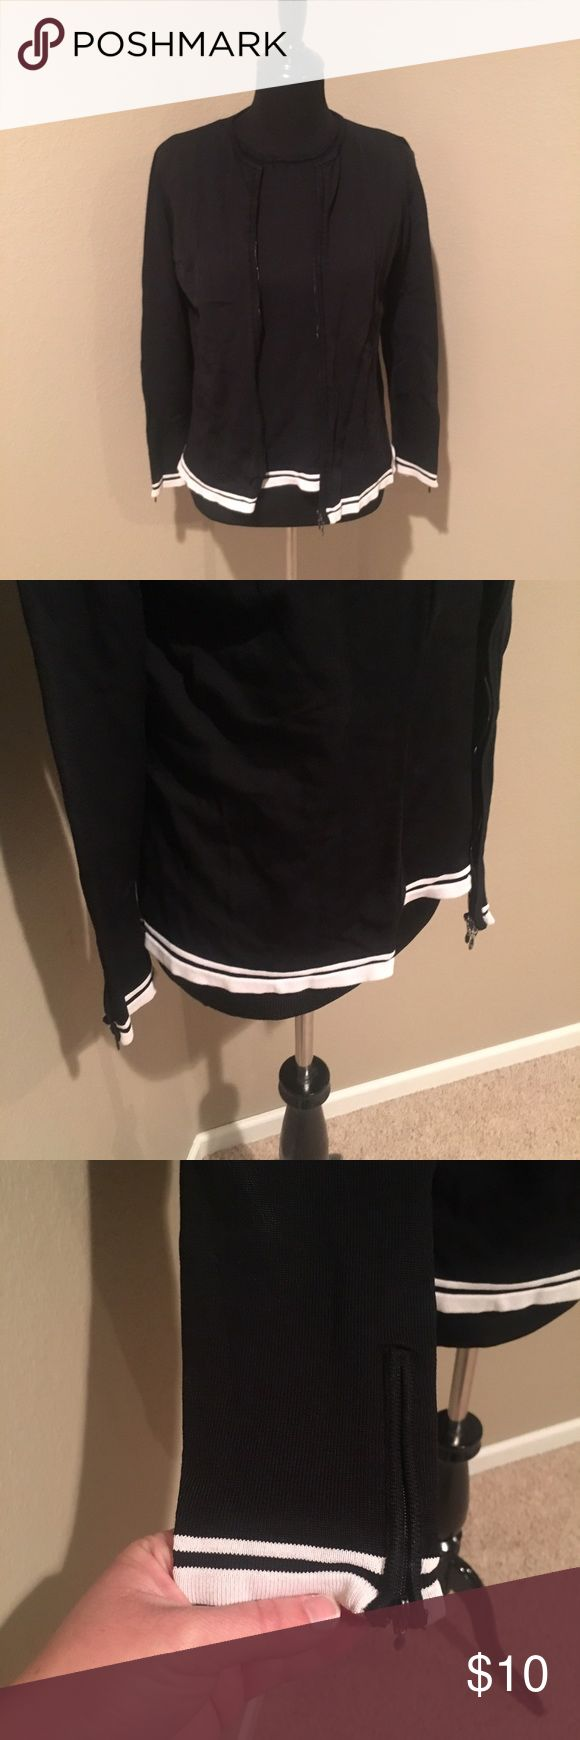 Black / white zip up cardigan set Black and white zip up cardigan and shell set. Zips all the way up with zippers on the sleeves. Zippers are missing a little of the paint and one small snag on shoulder as shown. Rayon / nylon blend. Casual Corner Sweaters Cardigans